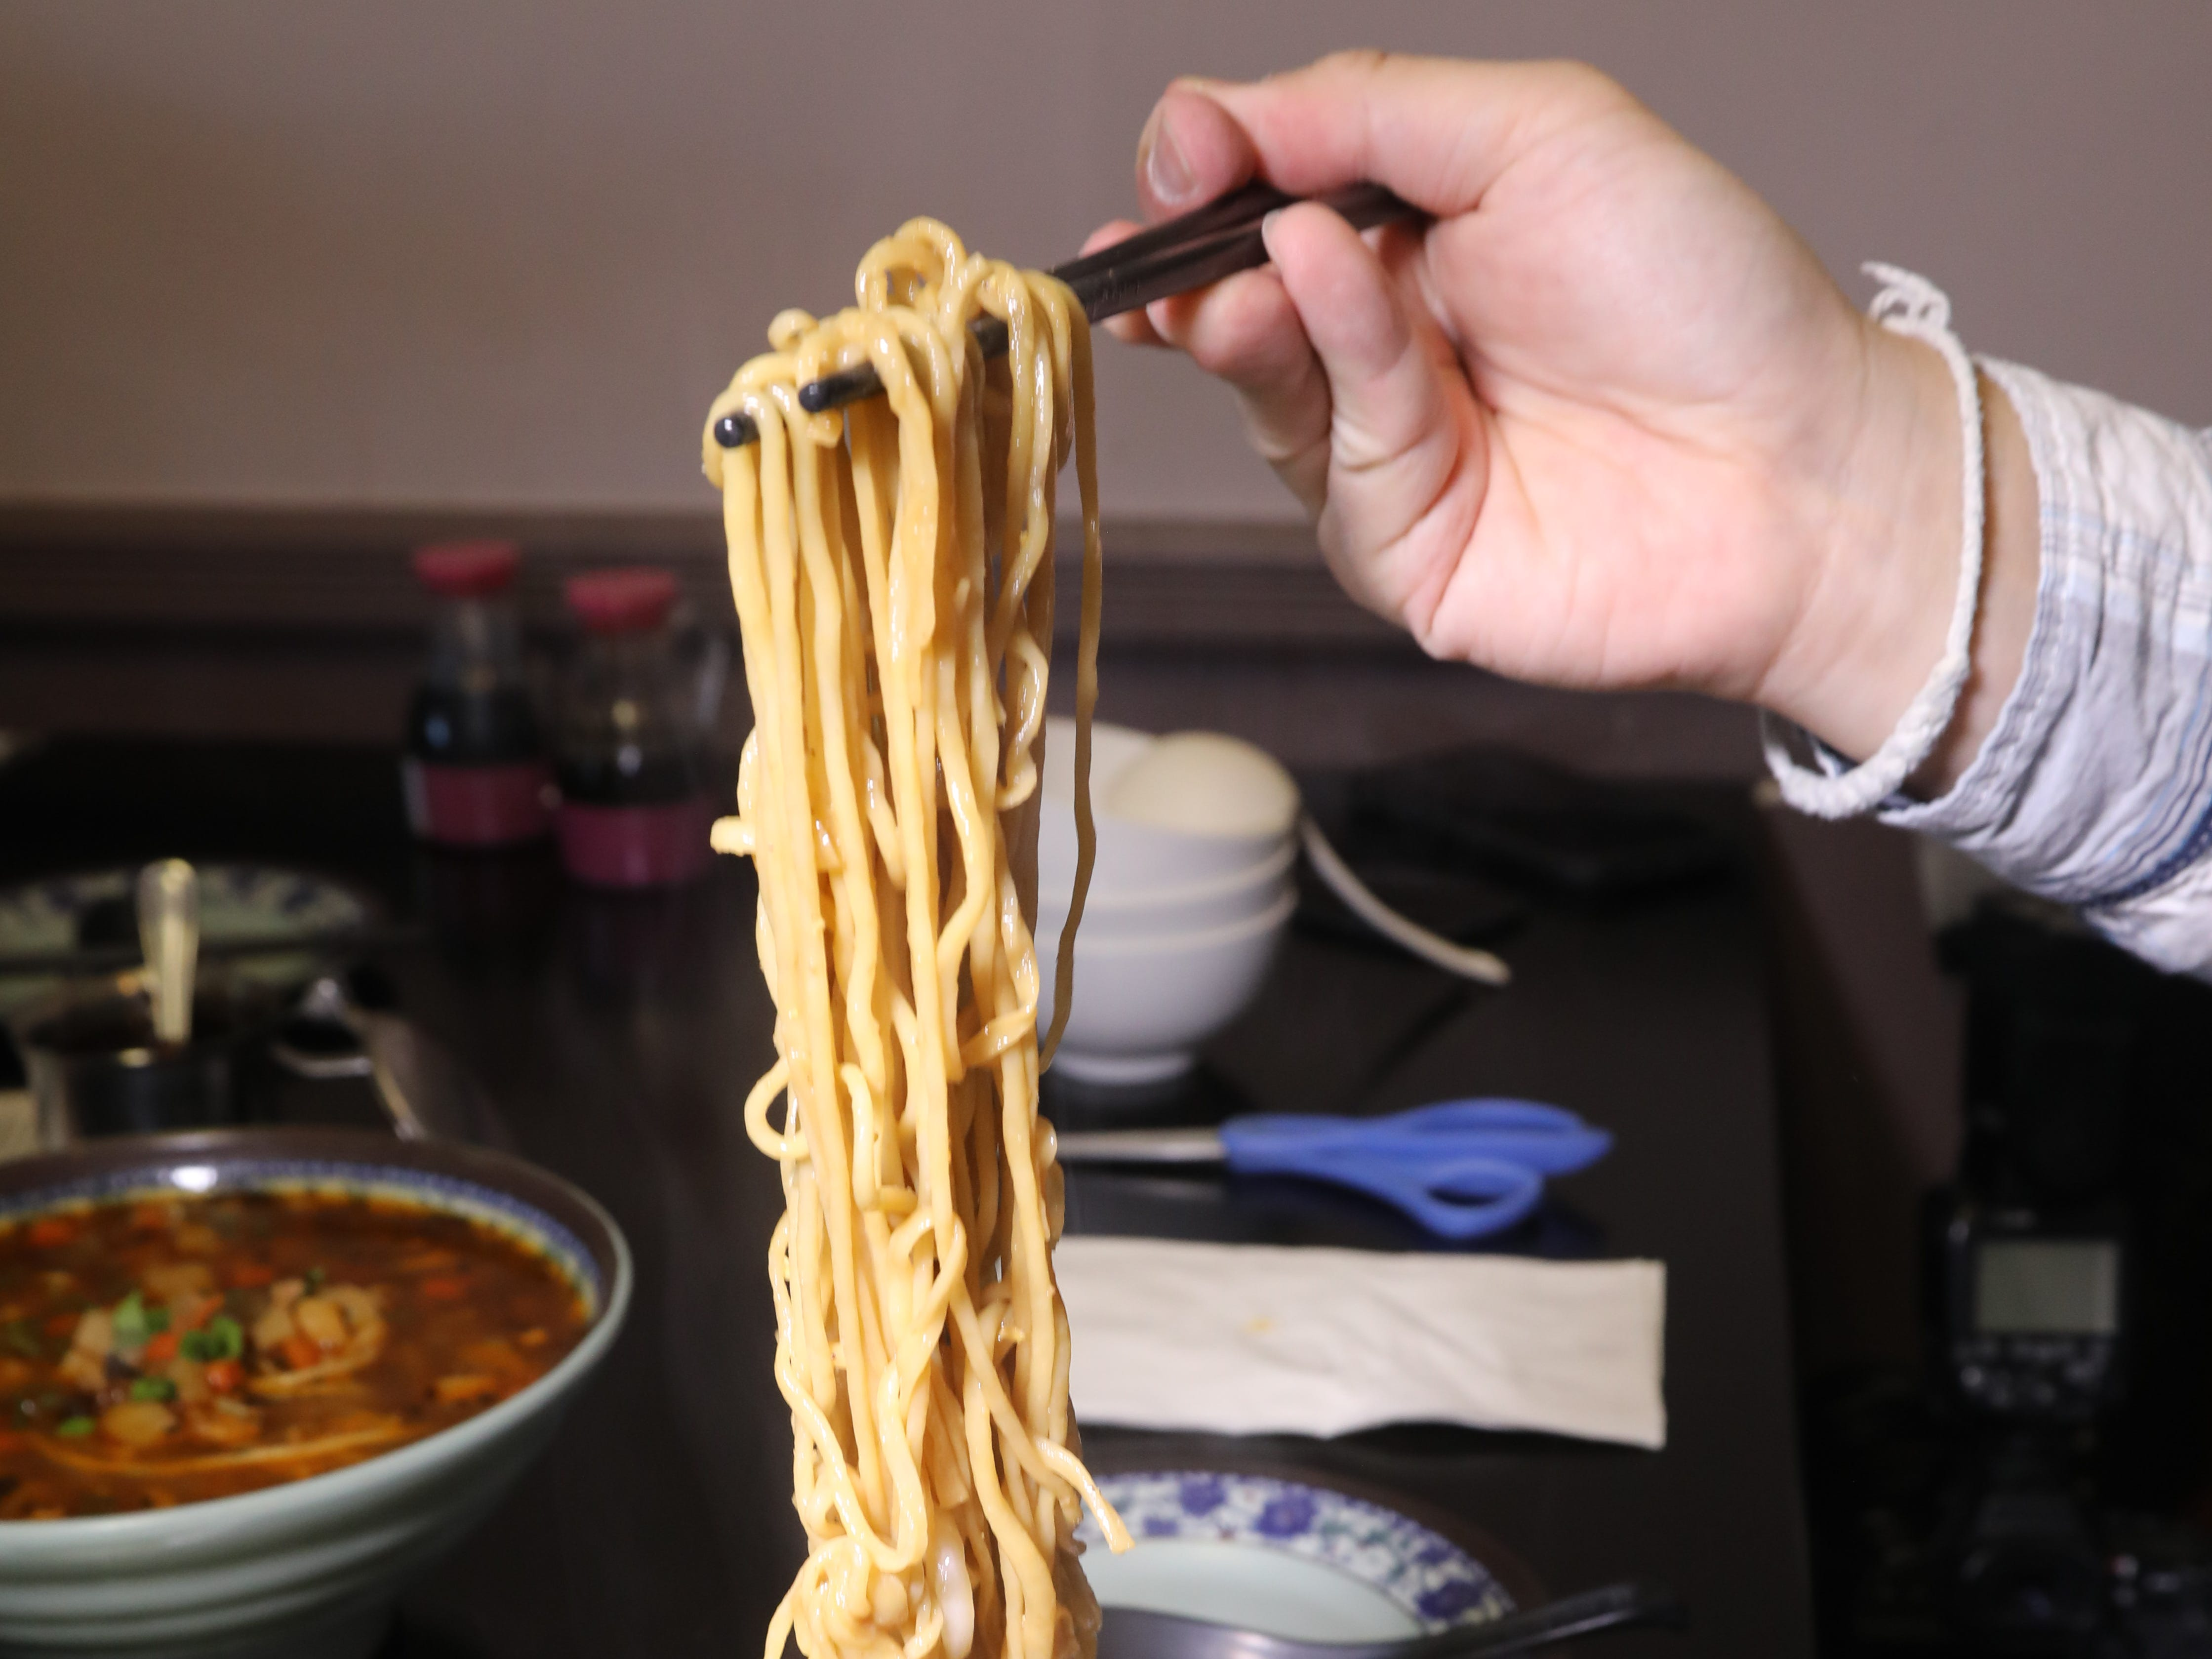 Long hand made noodles that are cut with scissors from Shan Shan Noodles.